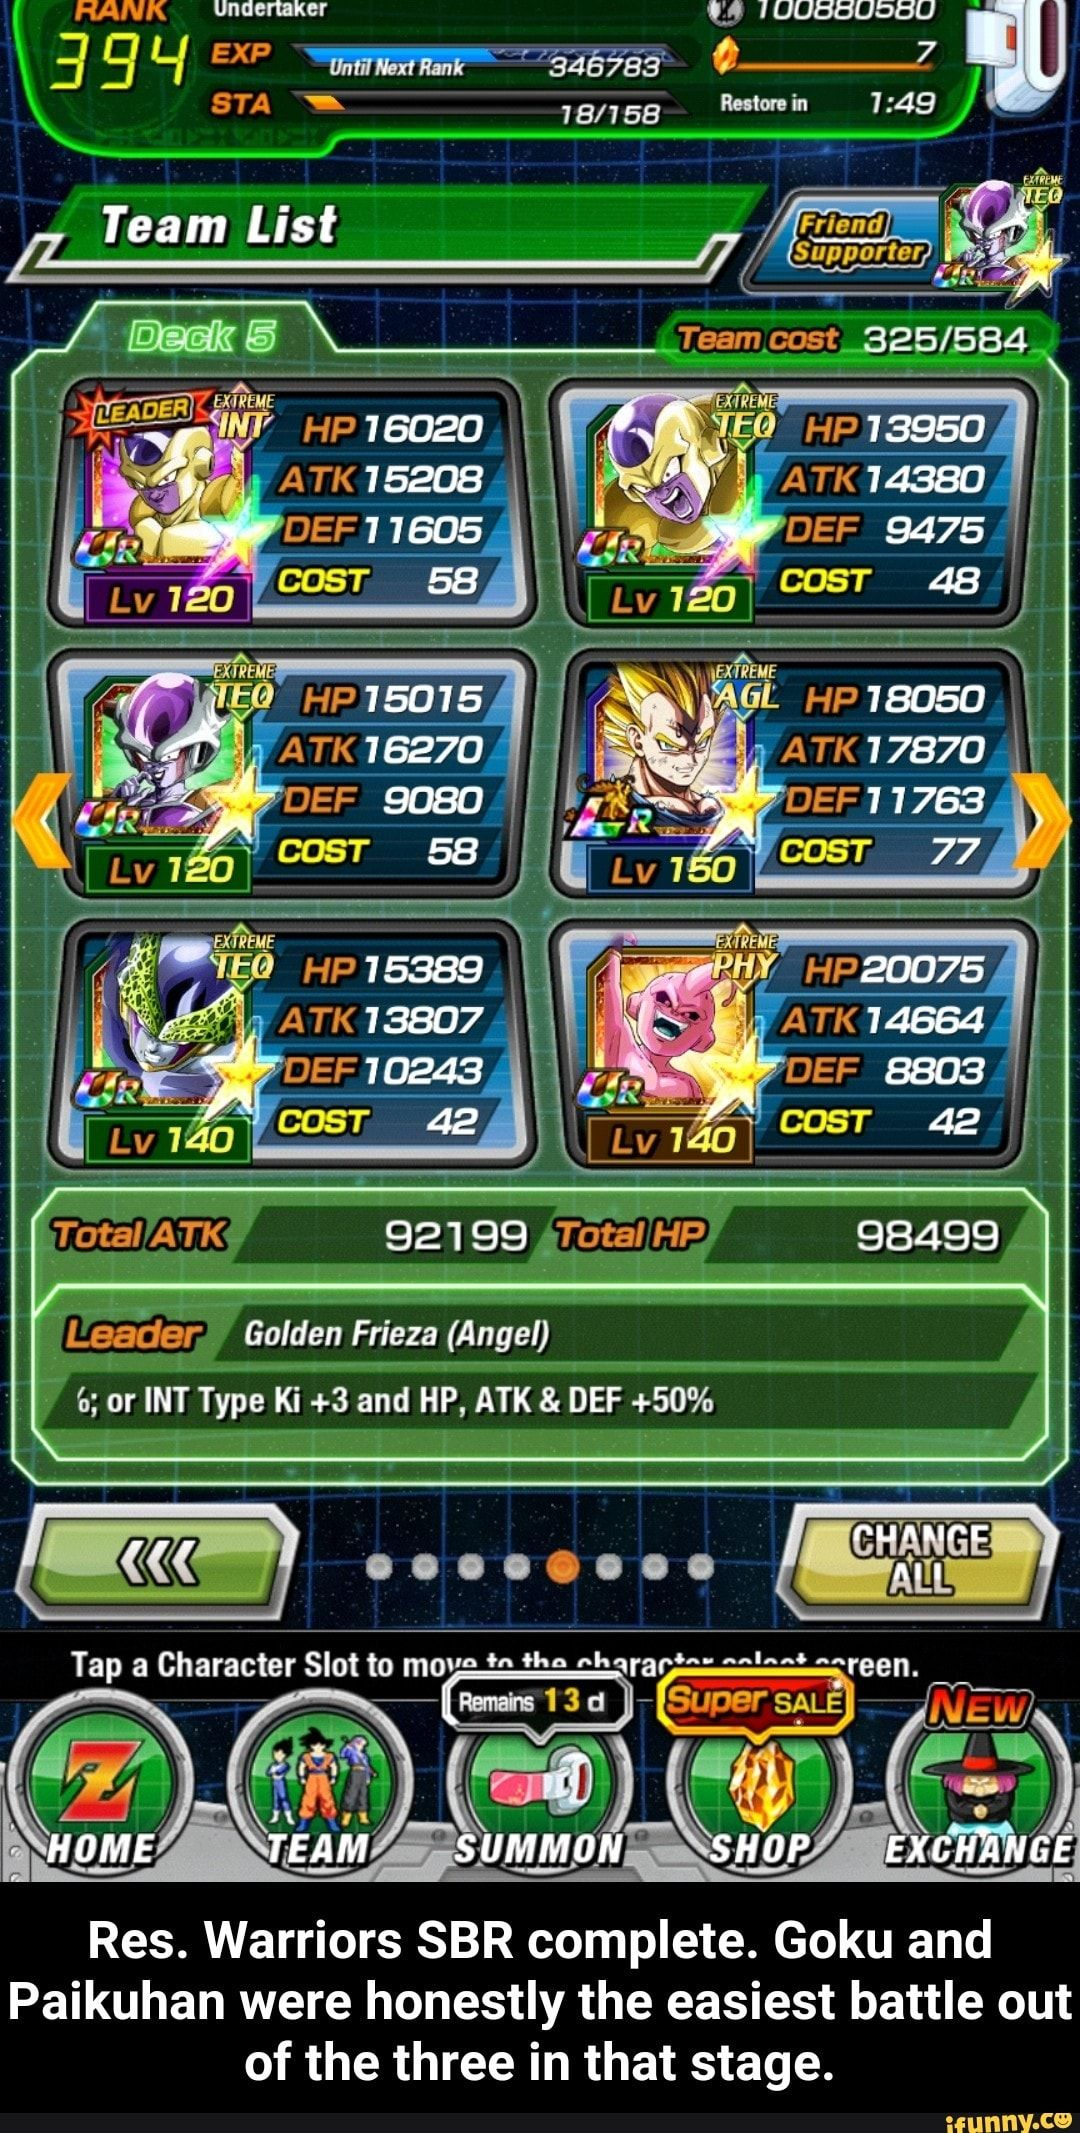 Res Warriors Sbr Complete Goku And Paikuhan Were Honestly The Easiest Battle Out Of The Three In That Stage Ifunny Memes Harry Potter Memes Hilarious Funny Dragon